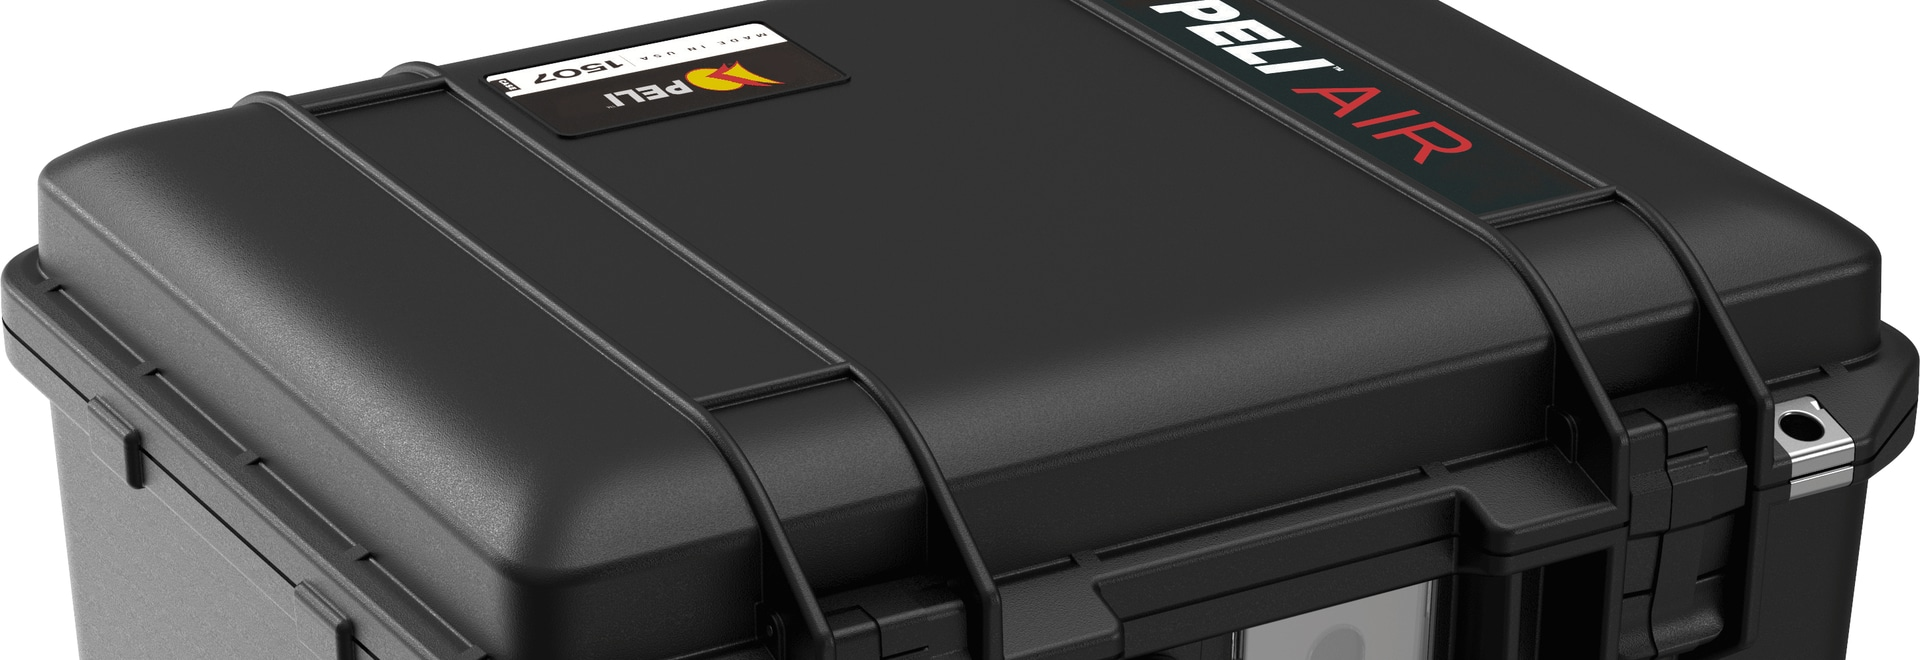 The Peli™ Air Range Increases to Ten Models with the New 1507 Case